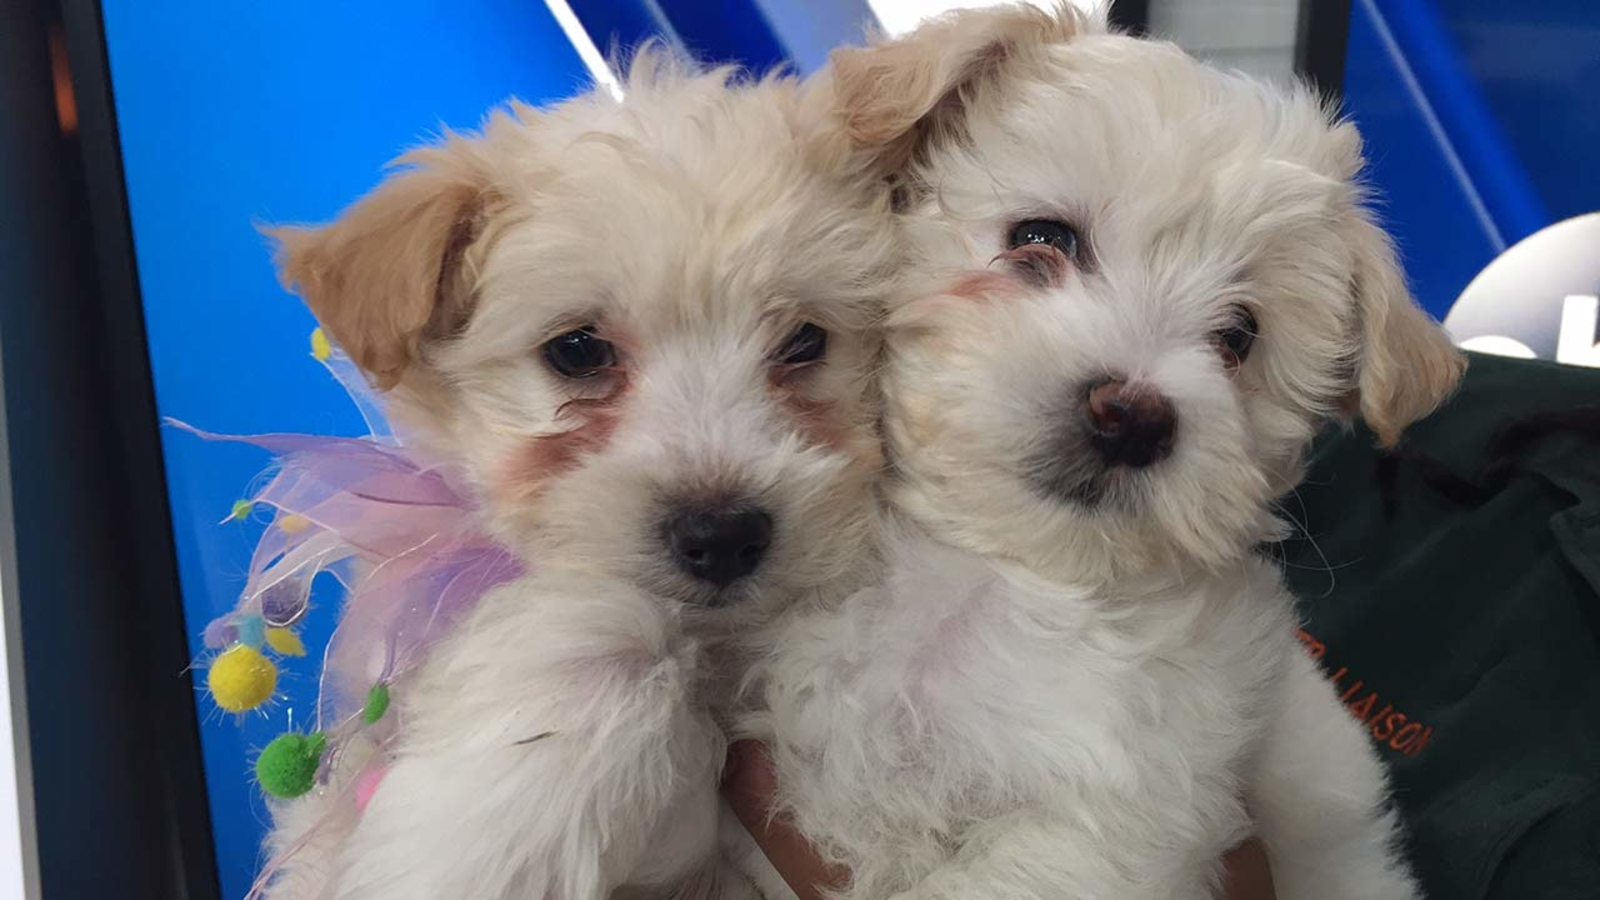 Pet Of The Week 2 Cocker Spaniel And Poodle Mix Puppies -2884